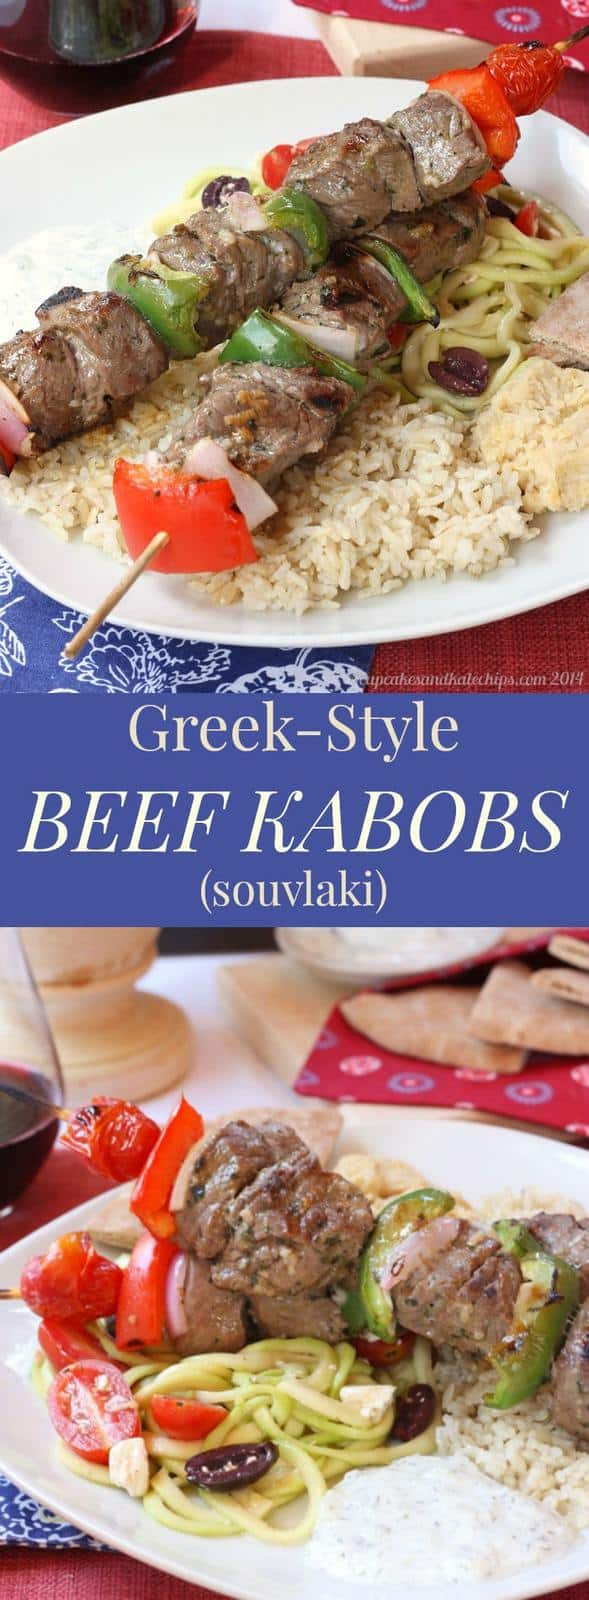 Greek-Style Beef Kabobs - fire up the gill to enjoy this easy recipe for beef souvlaki! Gluten free, low carb, and paleo. | cupcakesandkalechips.com